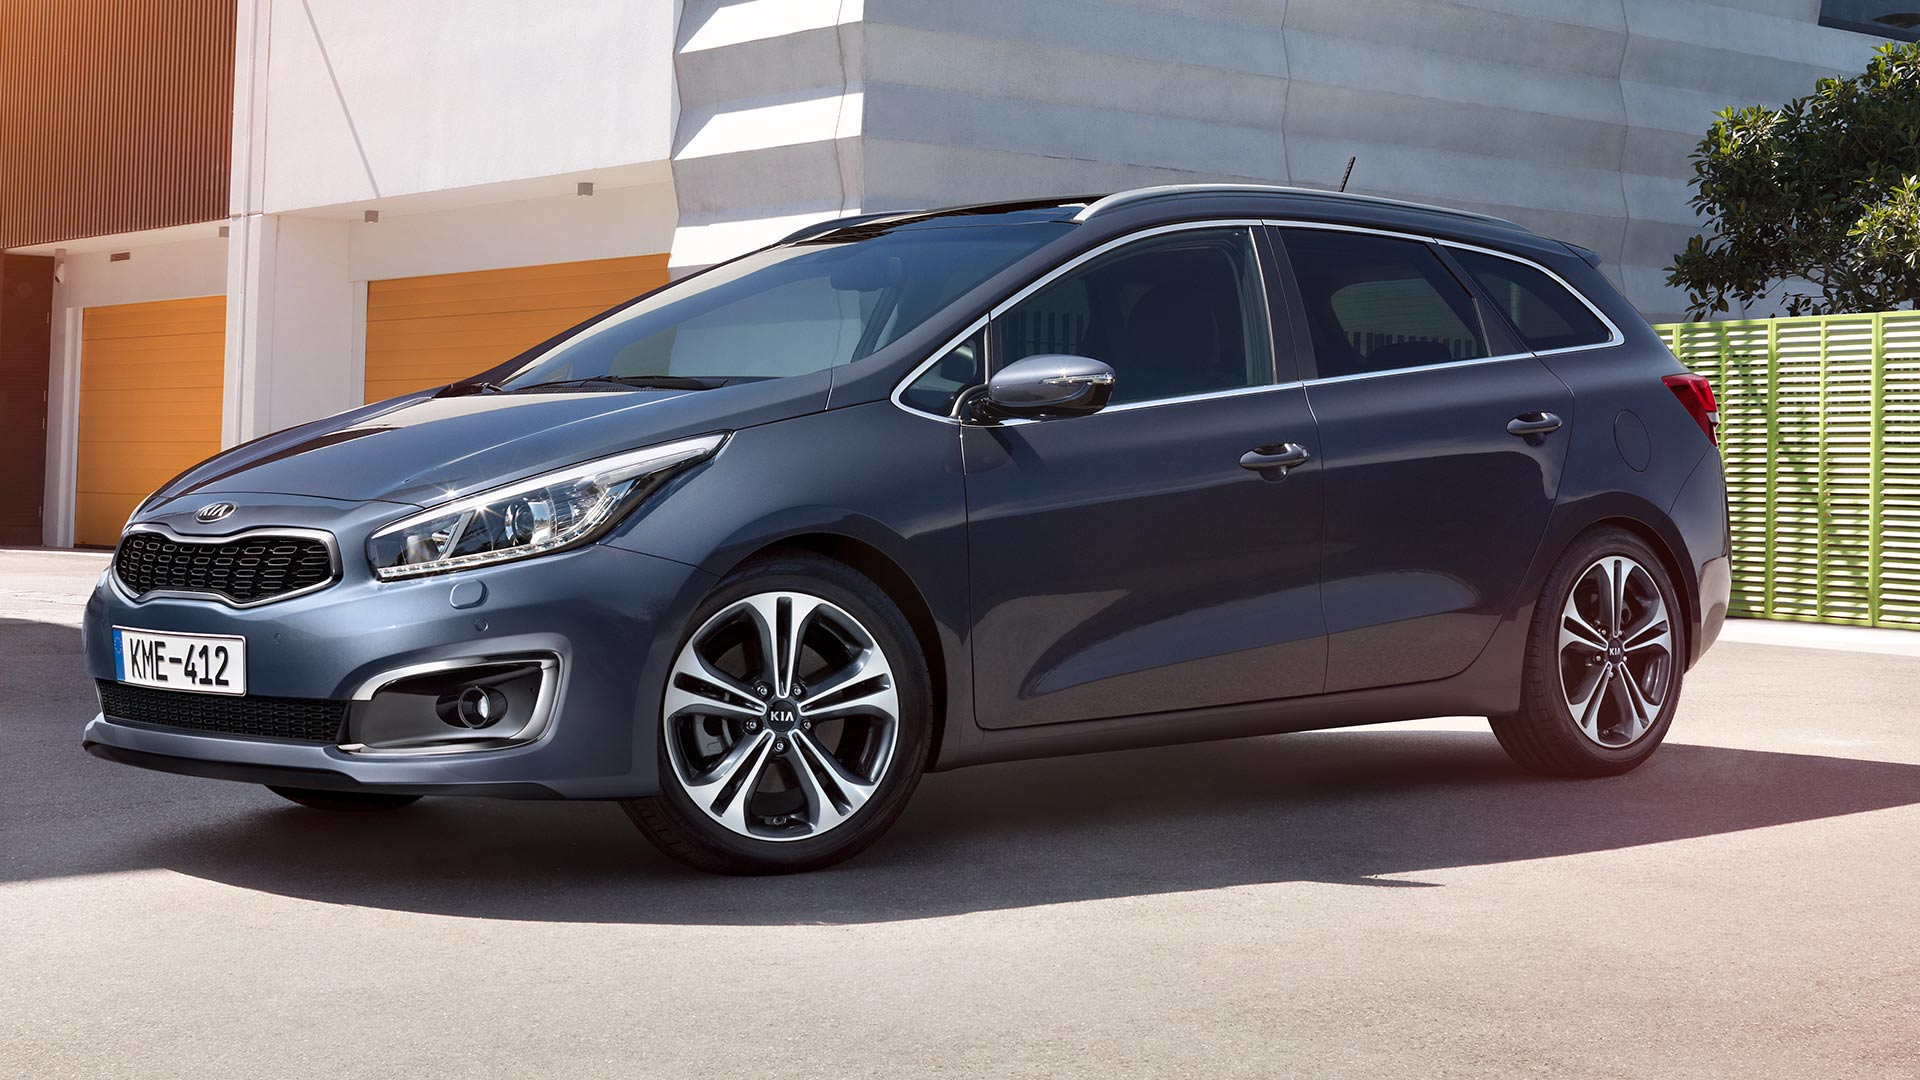 2016 kia ceed facelift all details photos videos the korean car blog